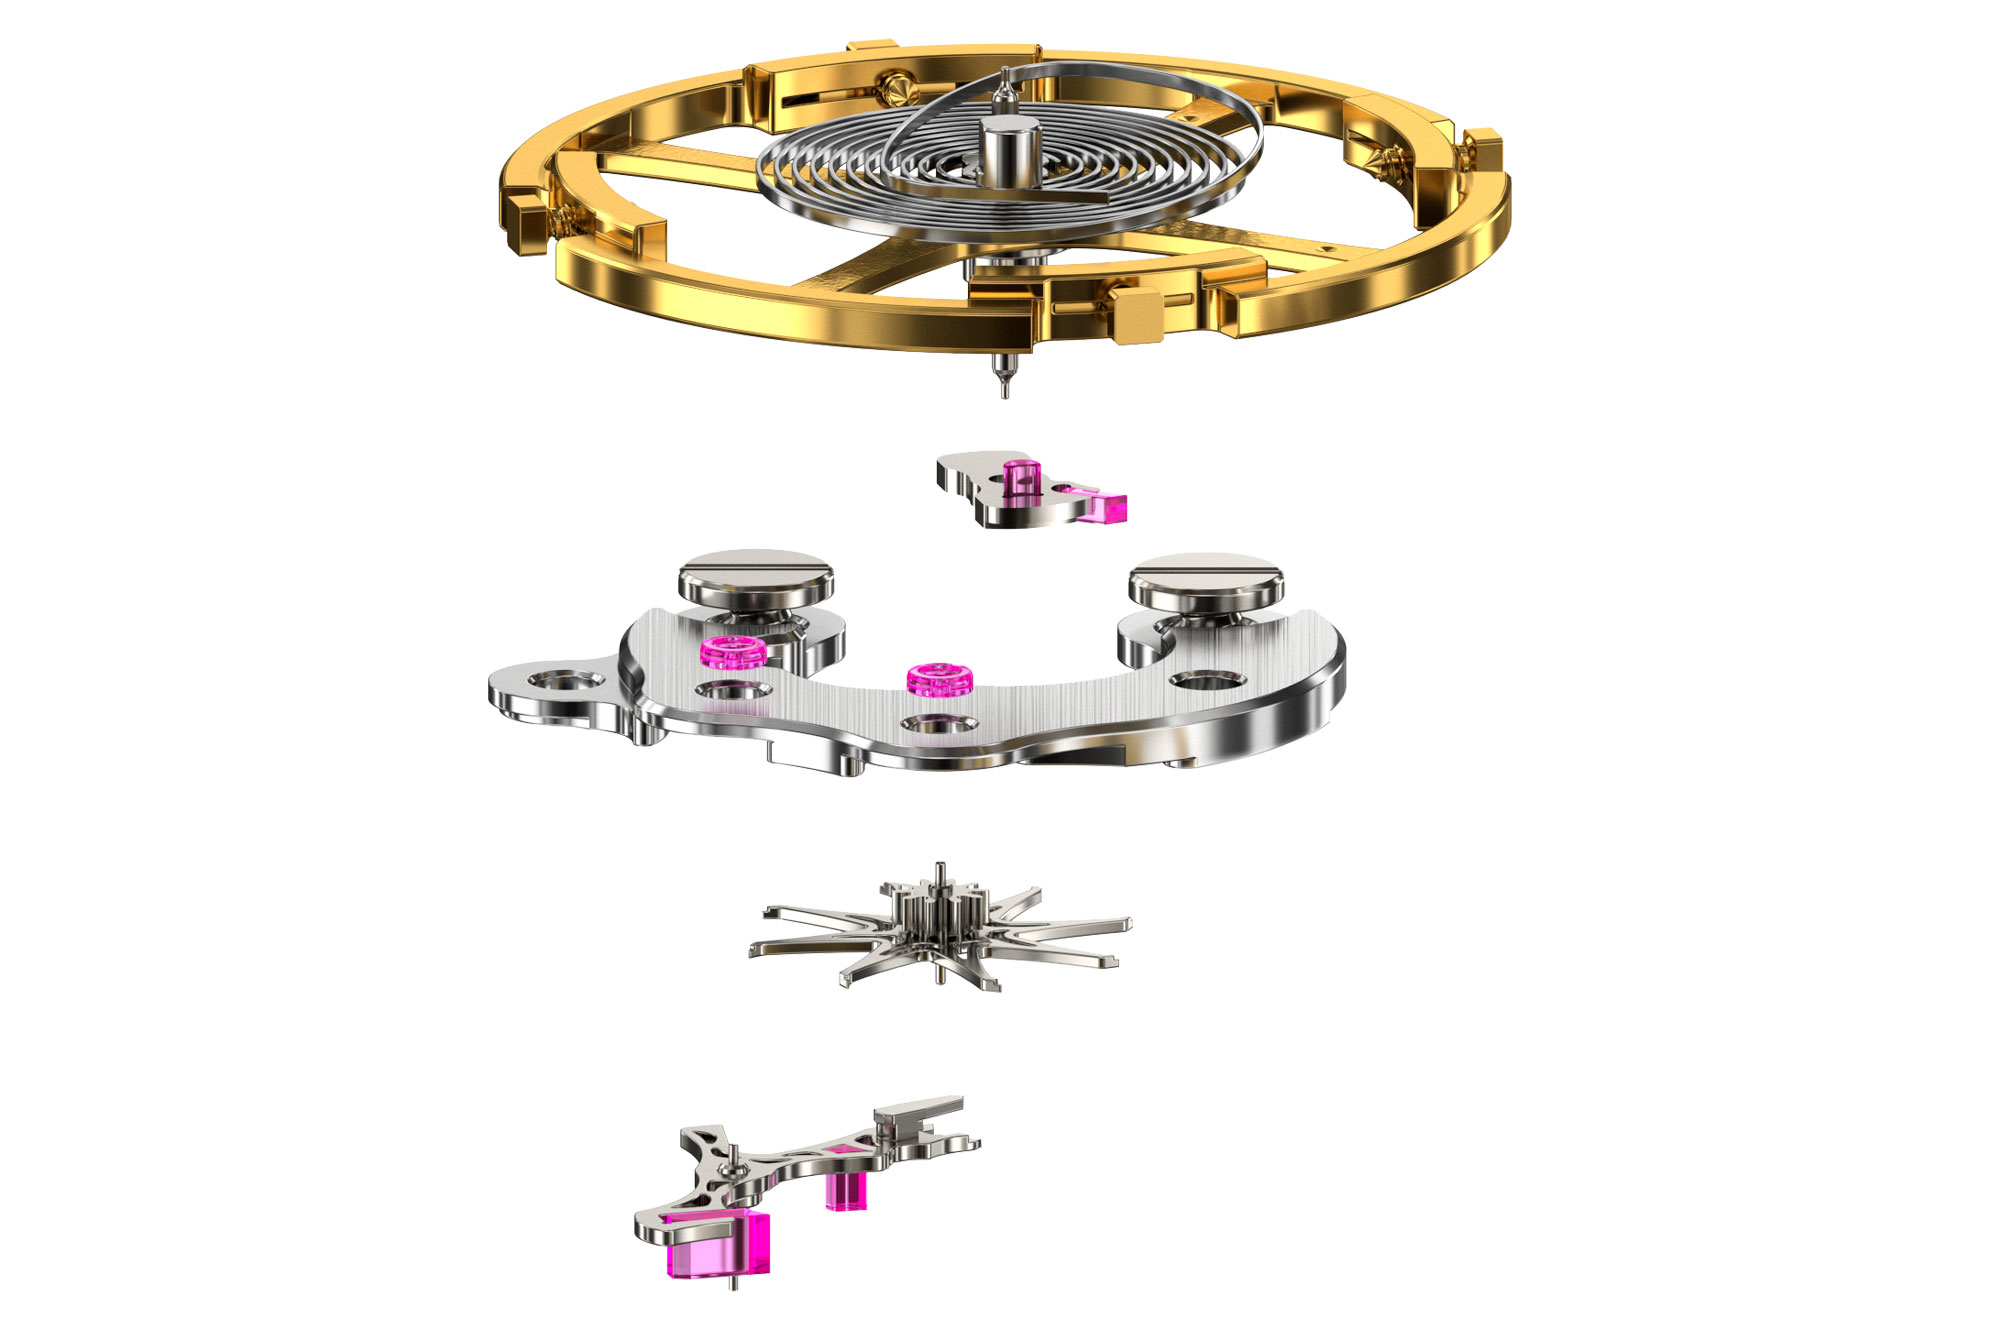 Exploded view of the Grand Seiko Dual Pulse Escapement.